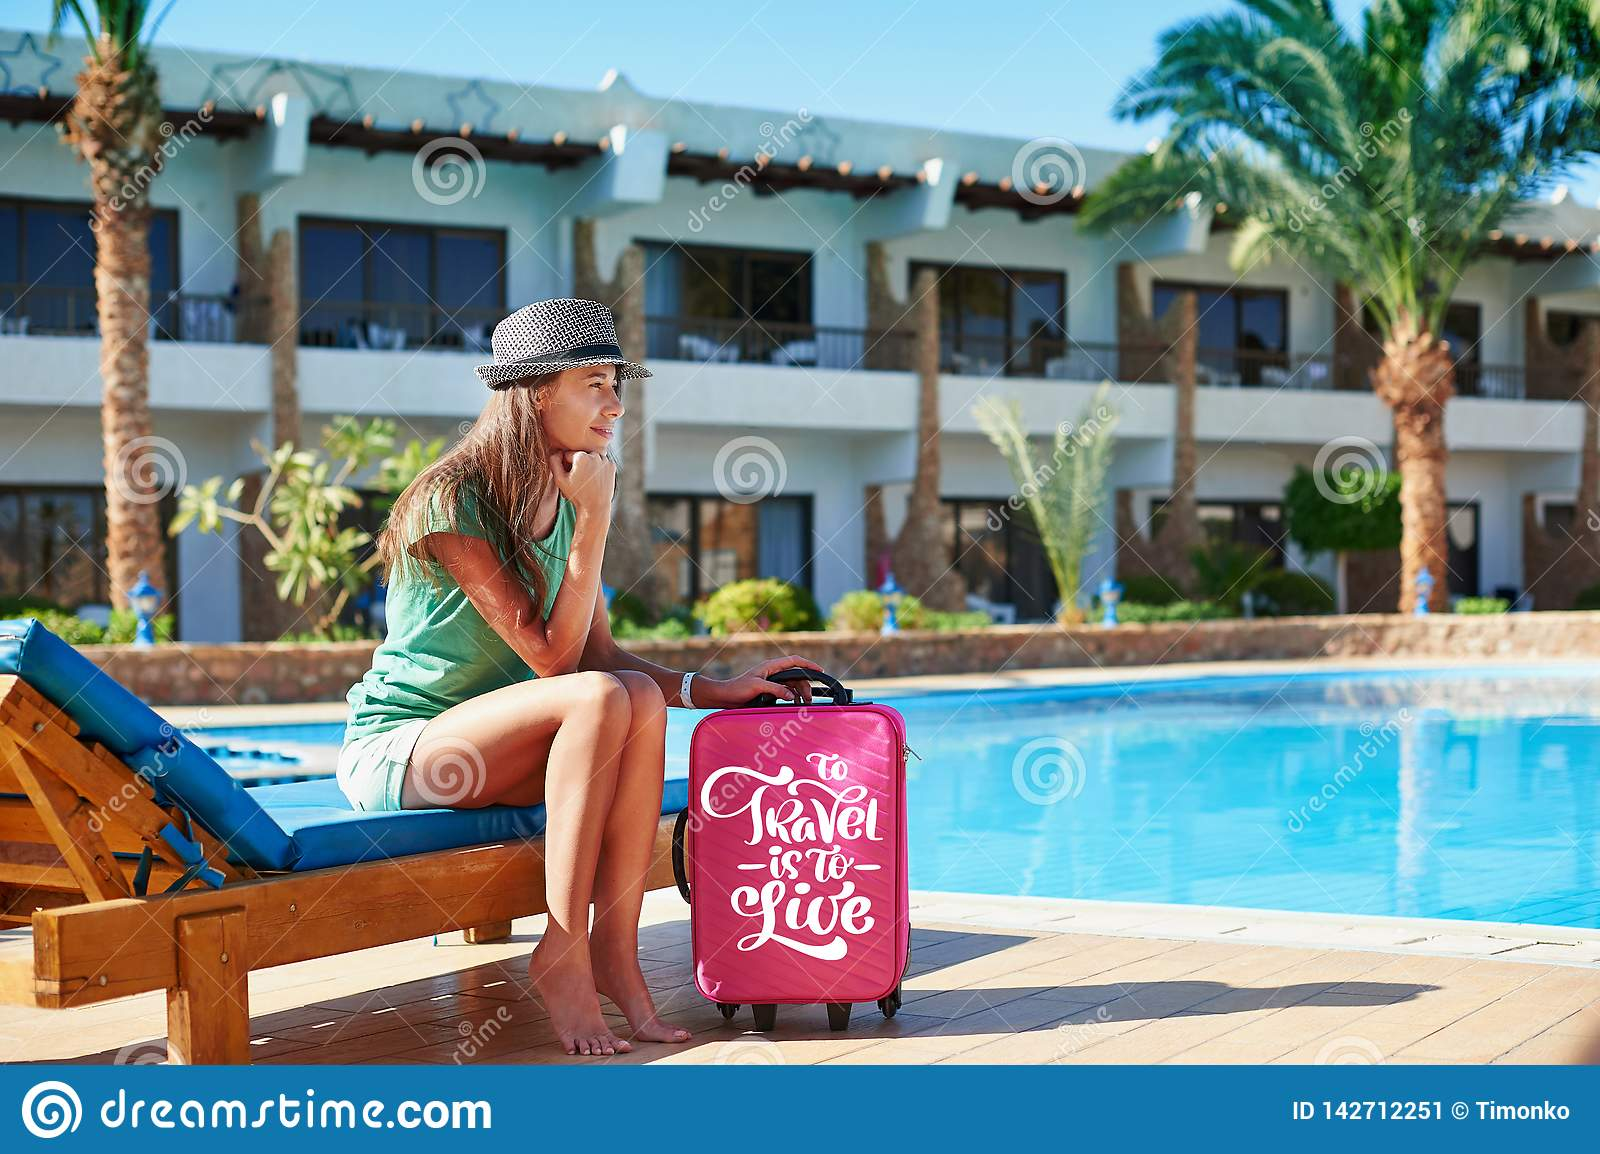 Travel, summer holidays and vacation concept - Beautiful woman walking near hotel pool area with red suitcase in Egypt